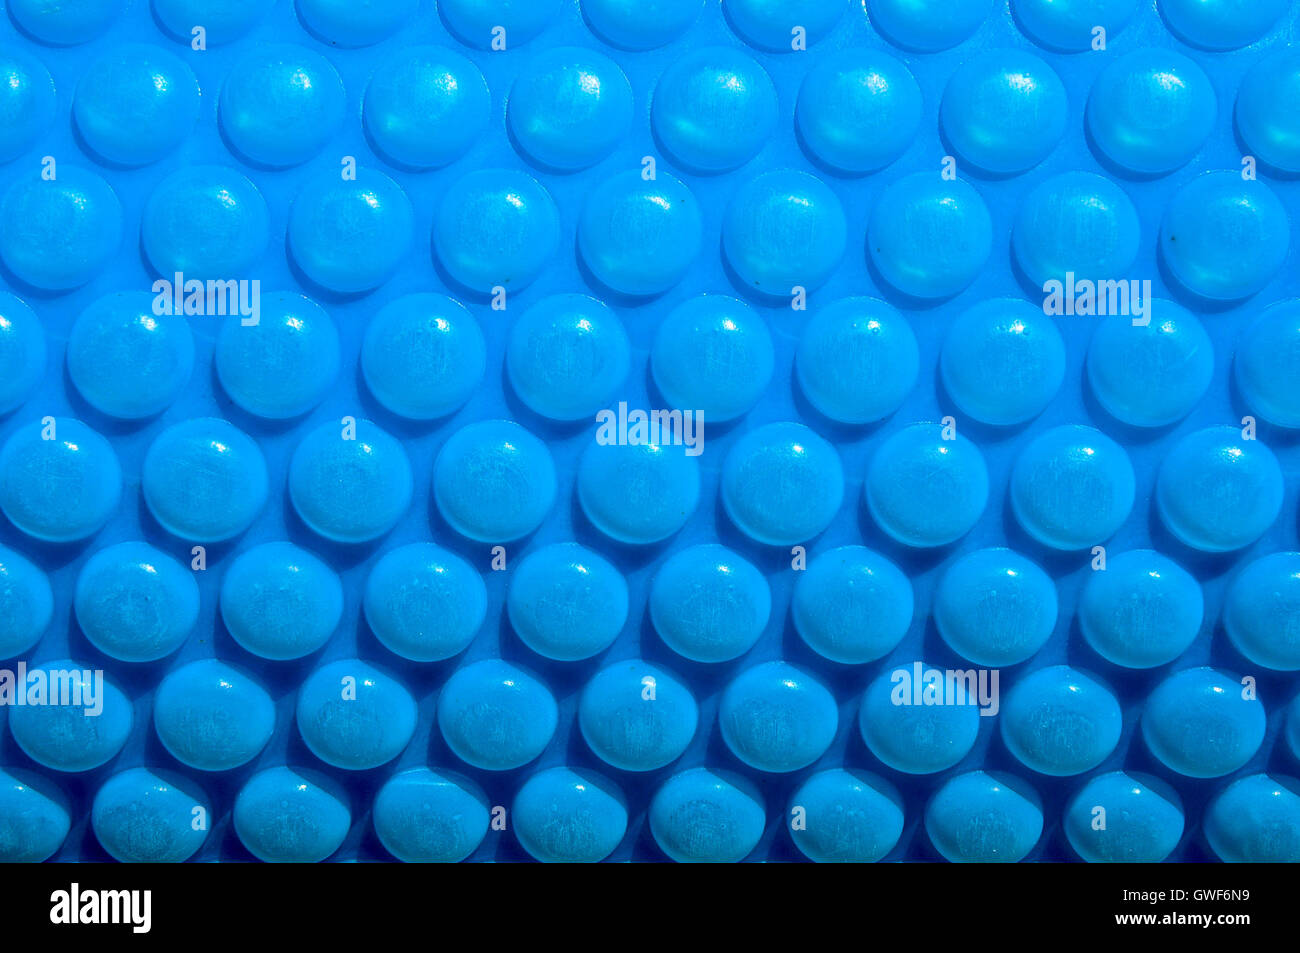 Abstract Closeup Of Bright Blue Bubble Pool Cover With